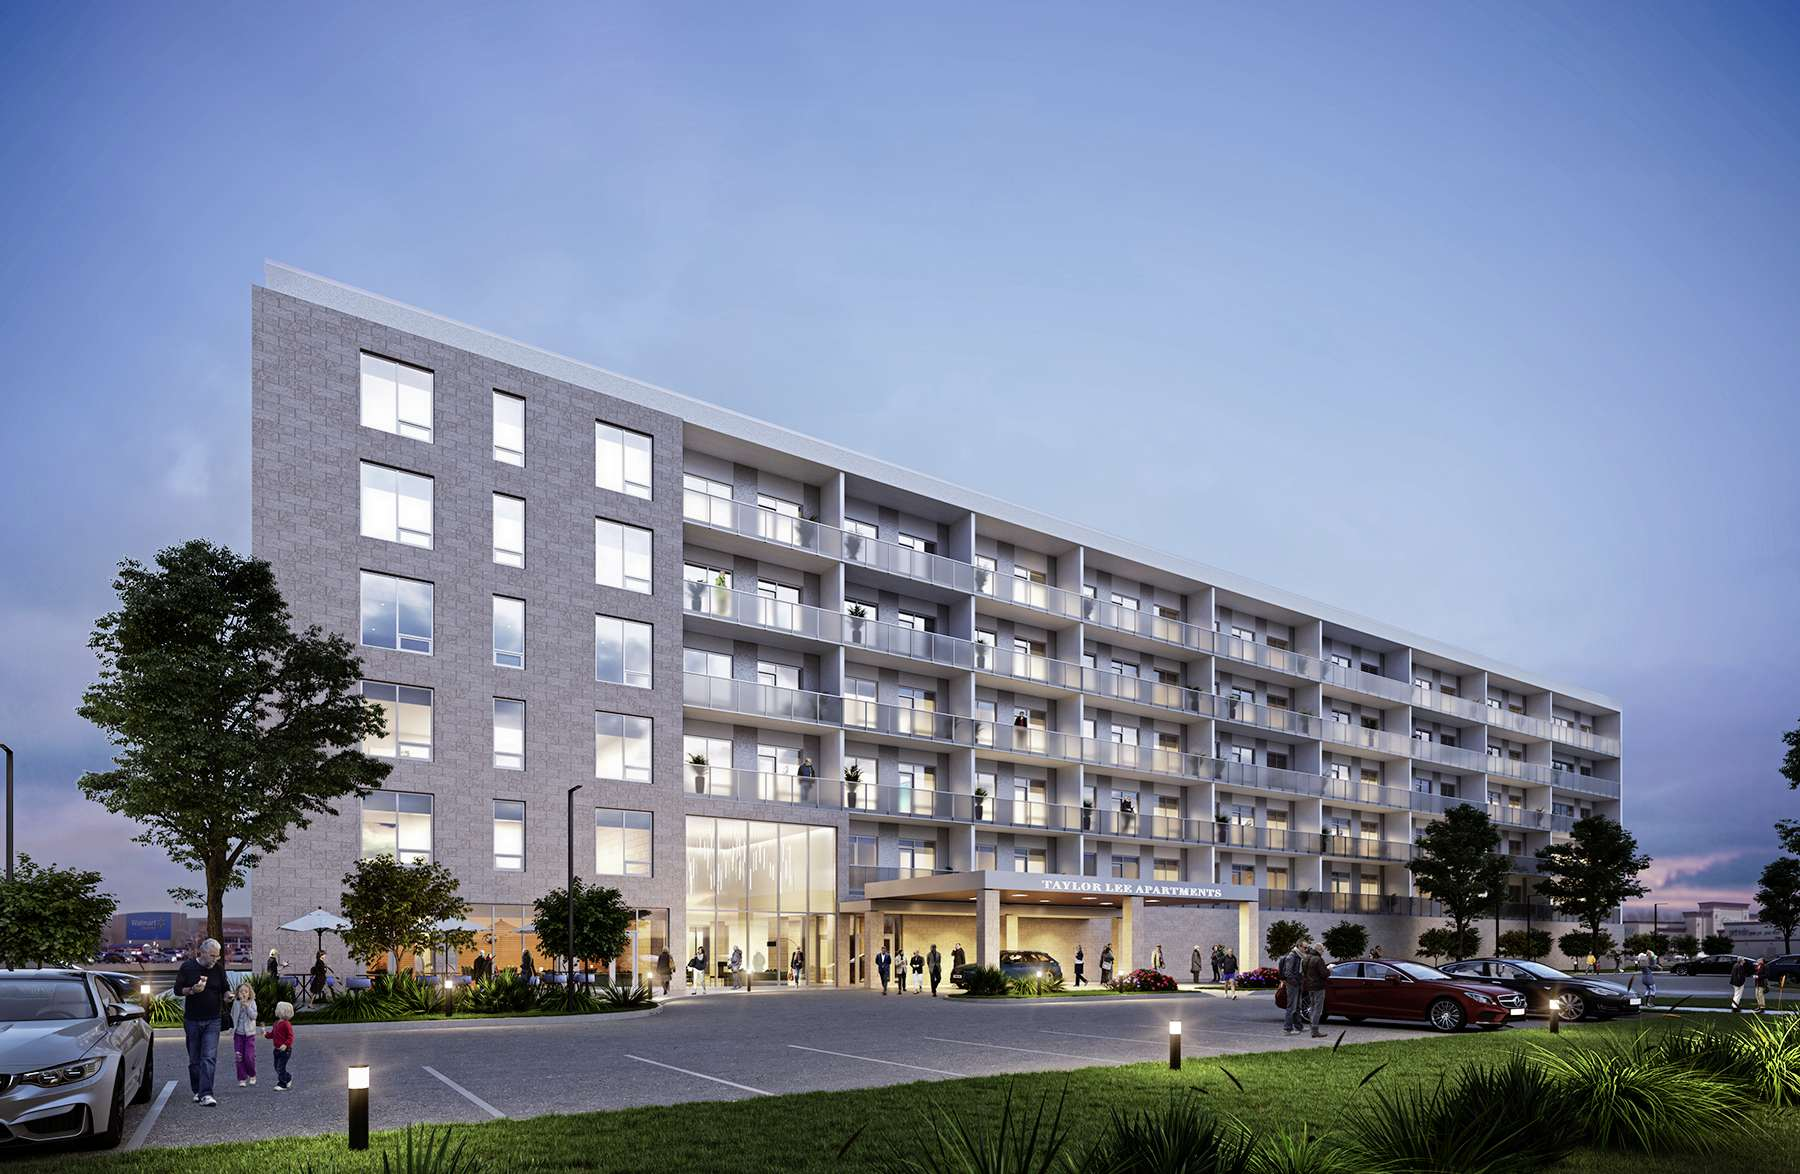 Artist's drawing of one of the Taylor Residences apartments. The ground was broken on Aug. 11 for the Taylor Claire, being built by Shindico Realty.